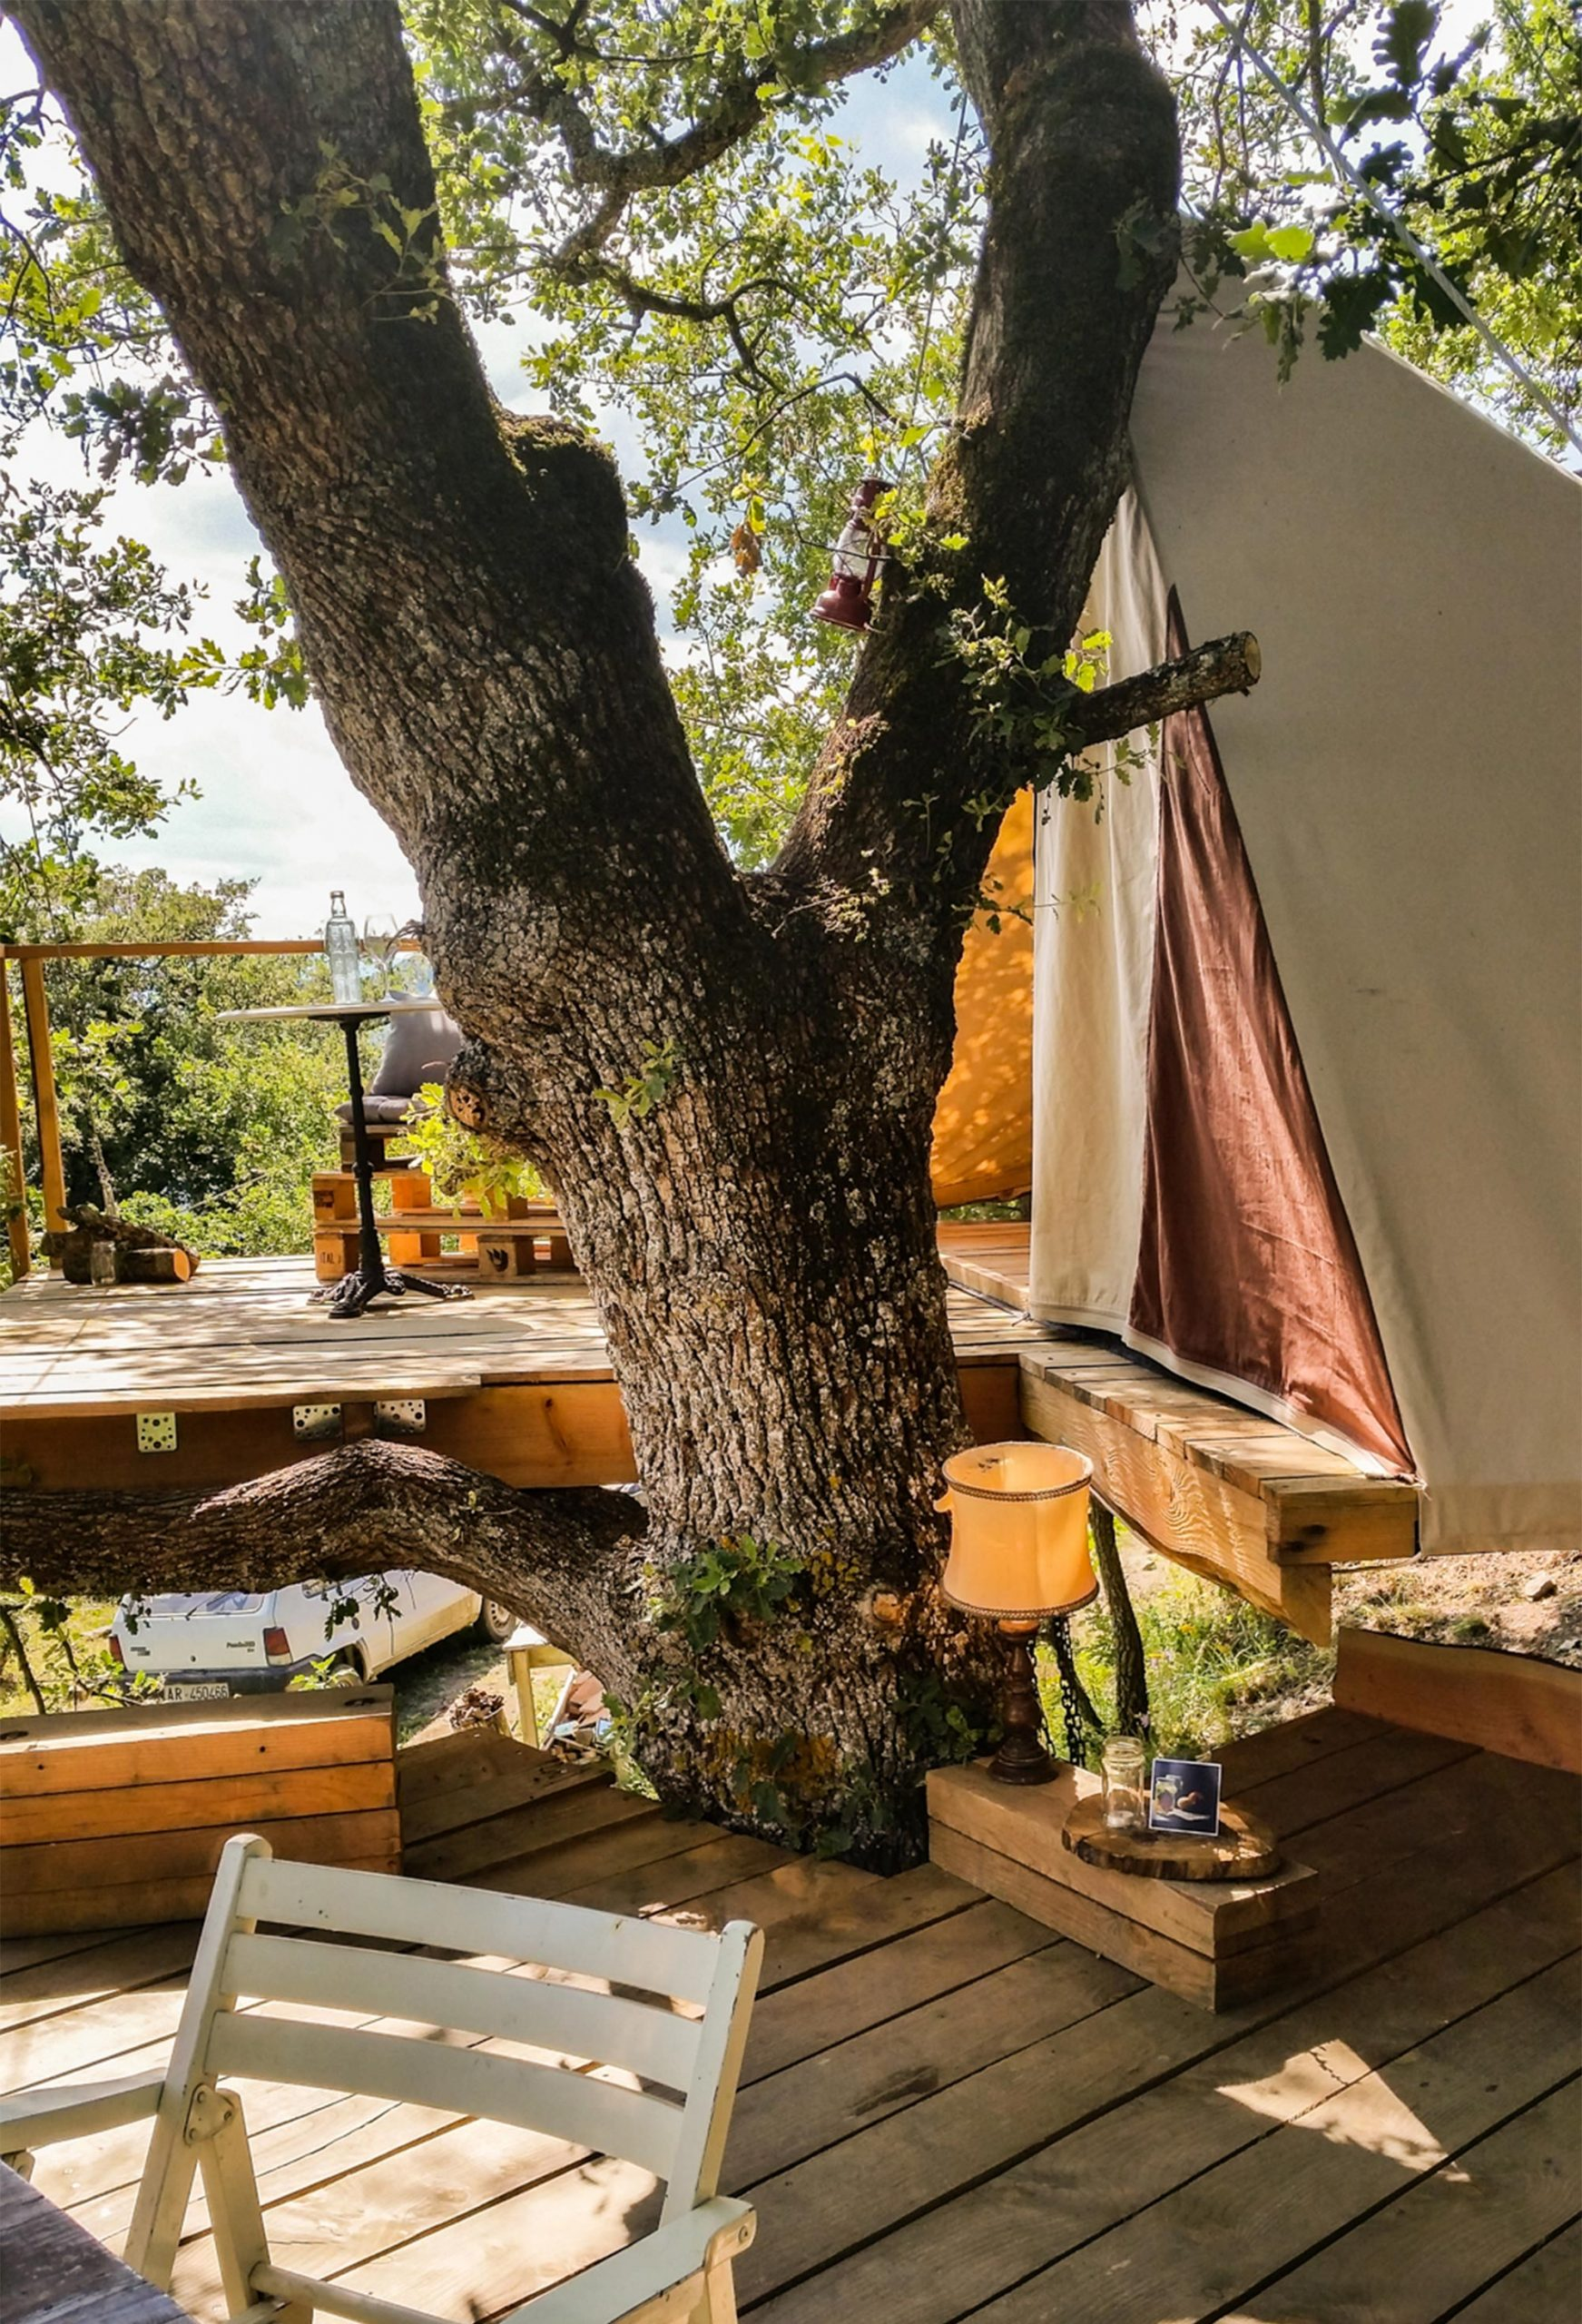 My treehouse tent for the night